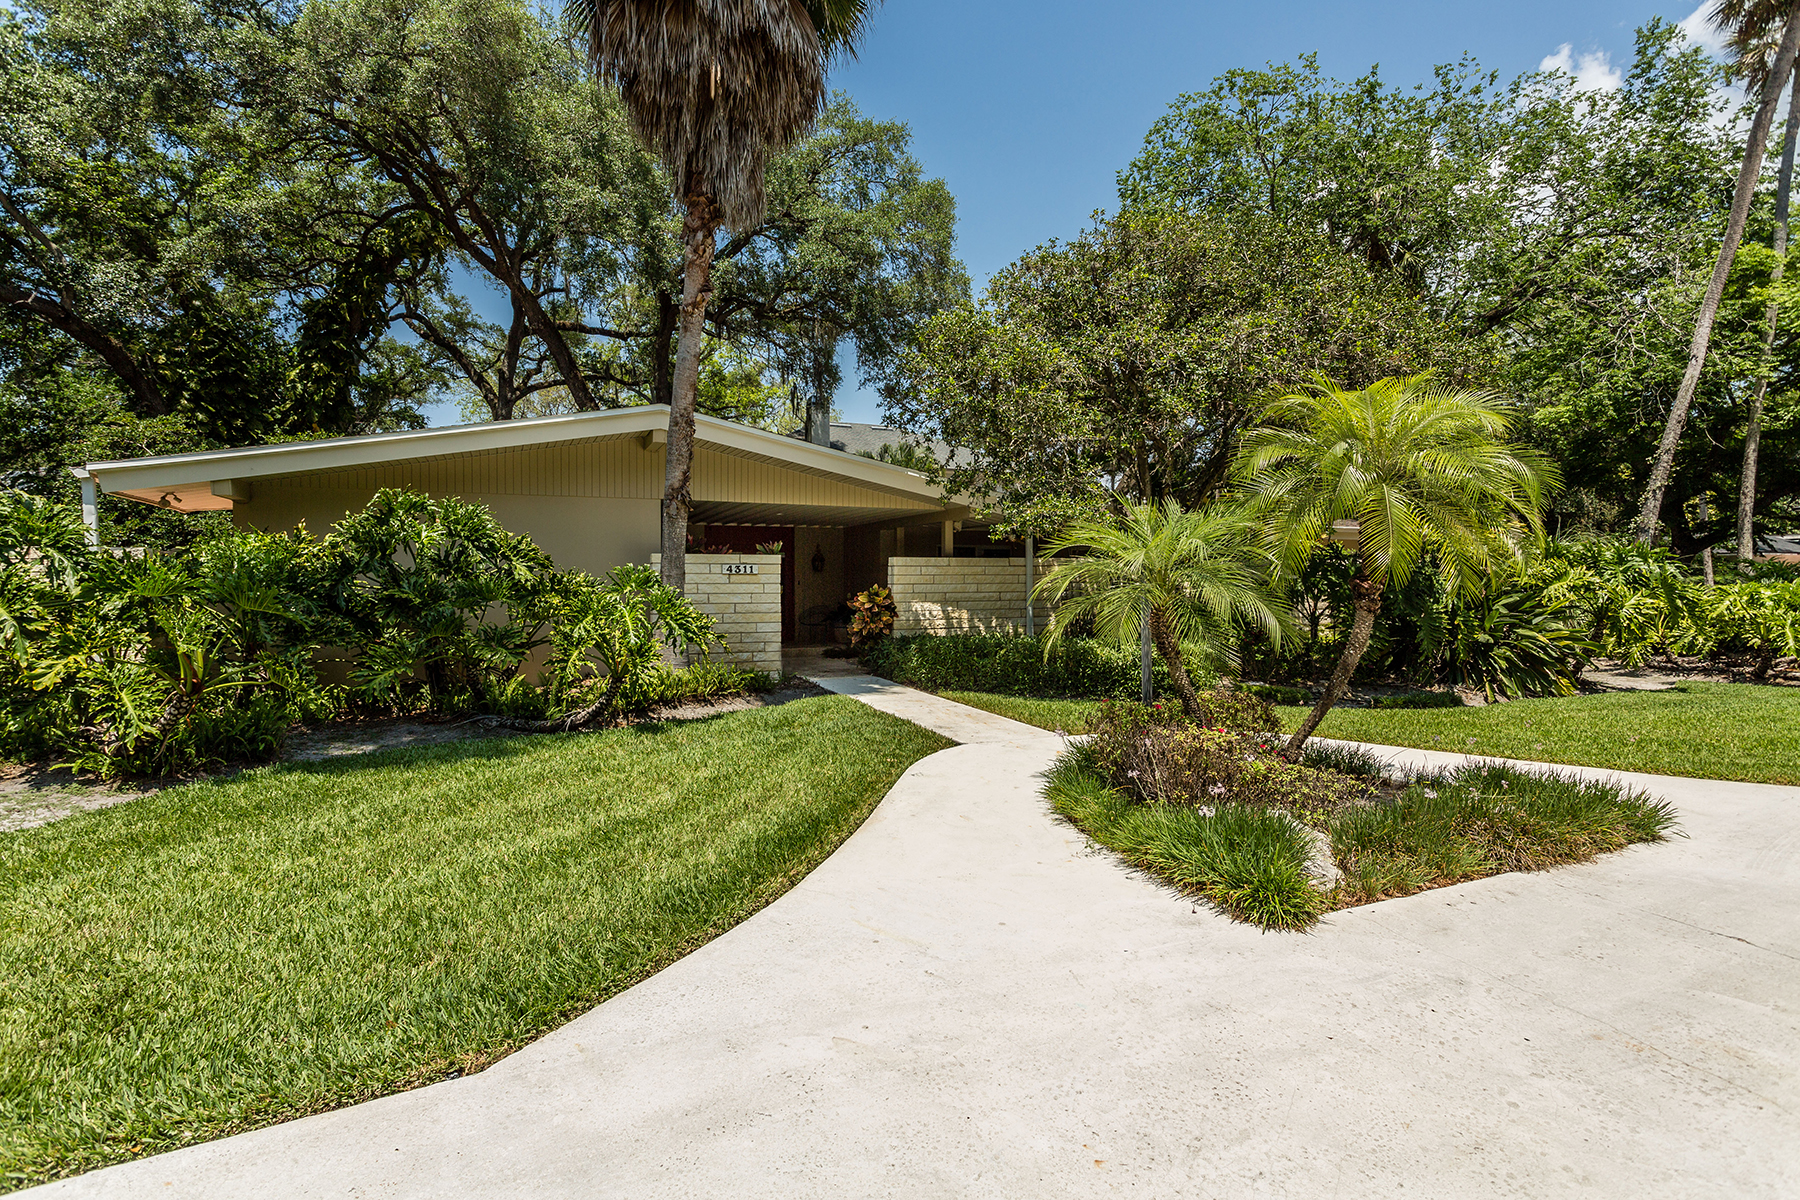 Single Family Home for Sale at SOUTH TAMPA 4311 W Azeele St Tampa, Florida, 33609 United States